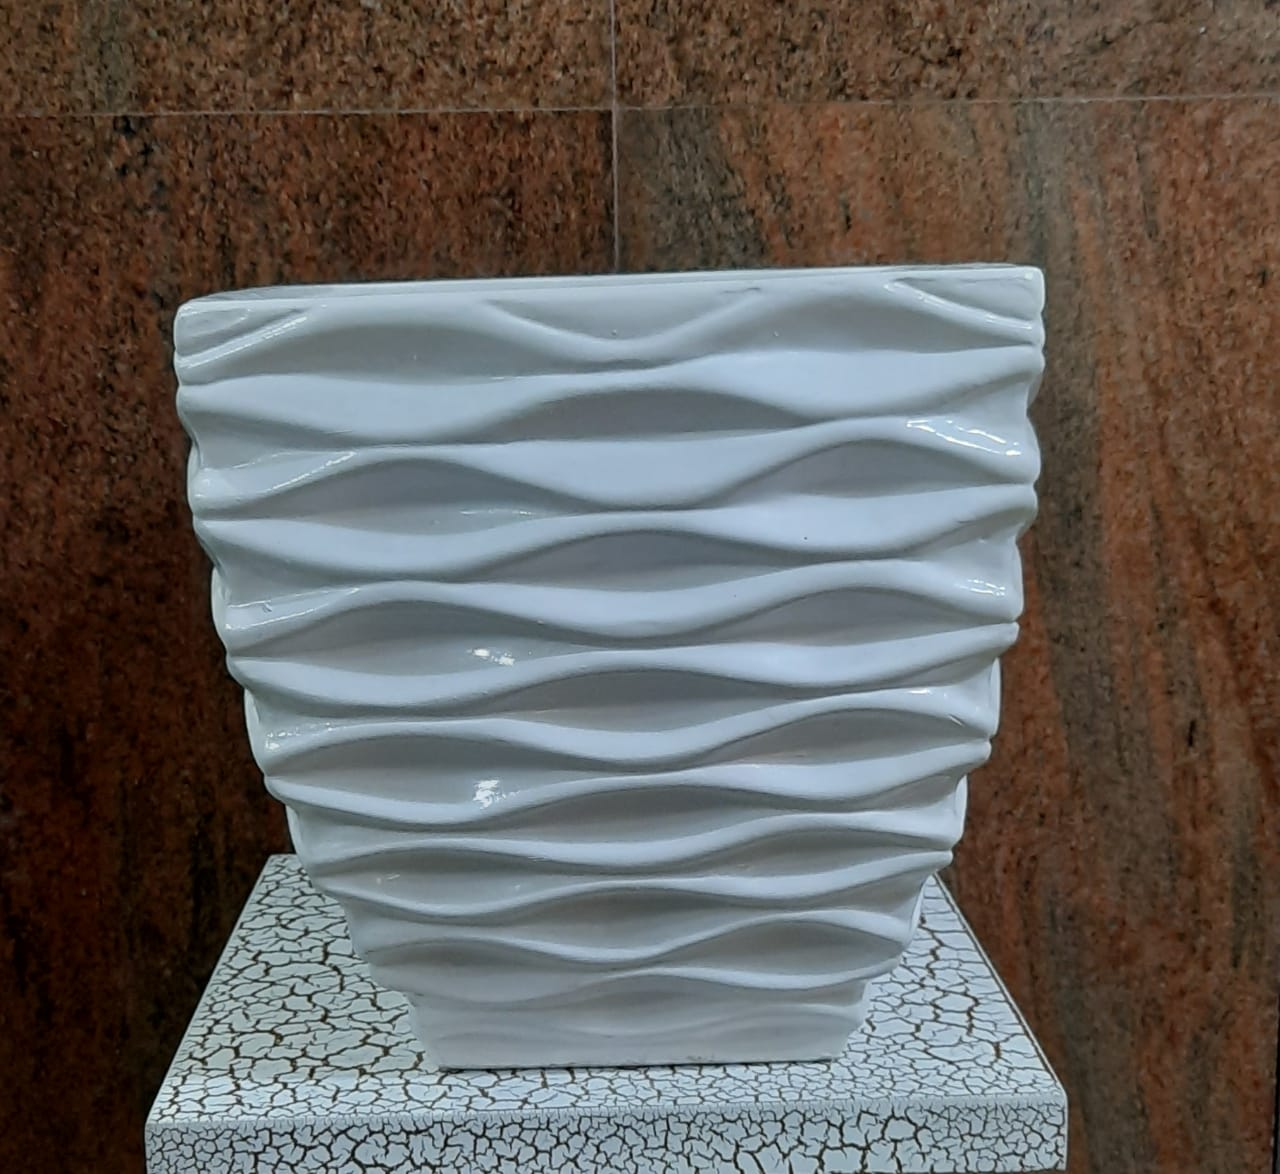 25cm Square Ceramic Base - Green Gardens Mihiliya (Pvt) Ltd